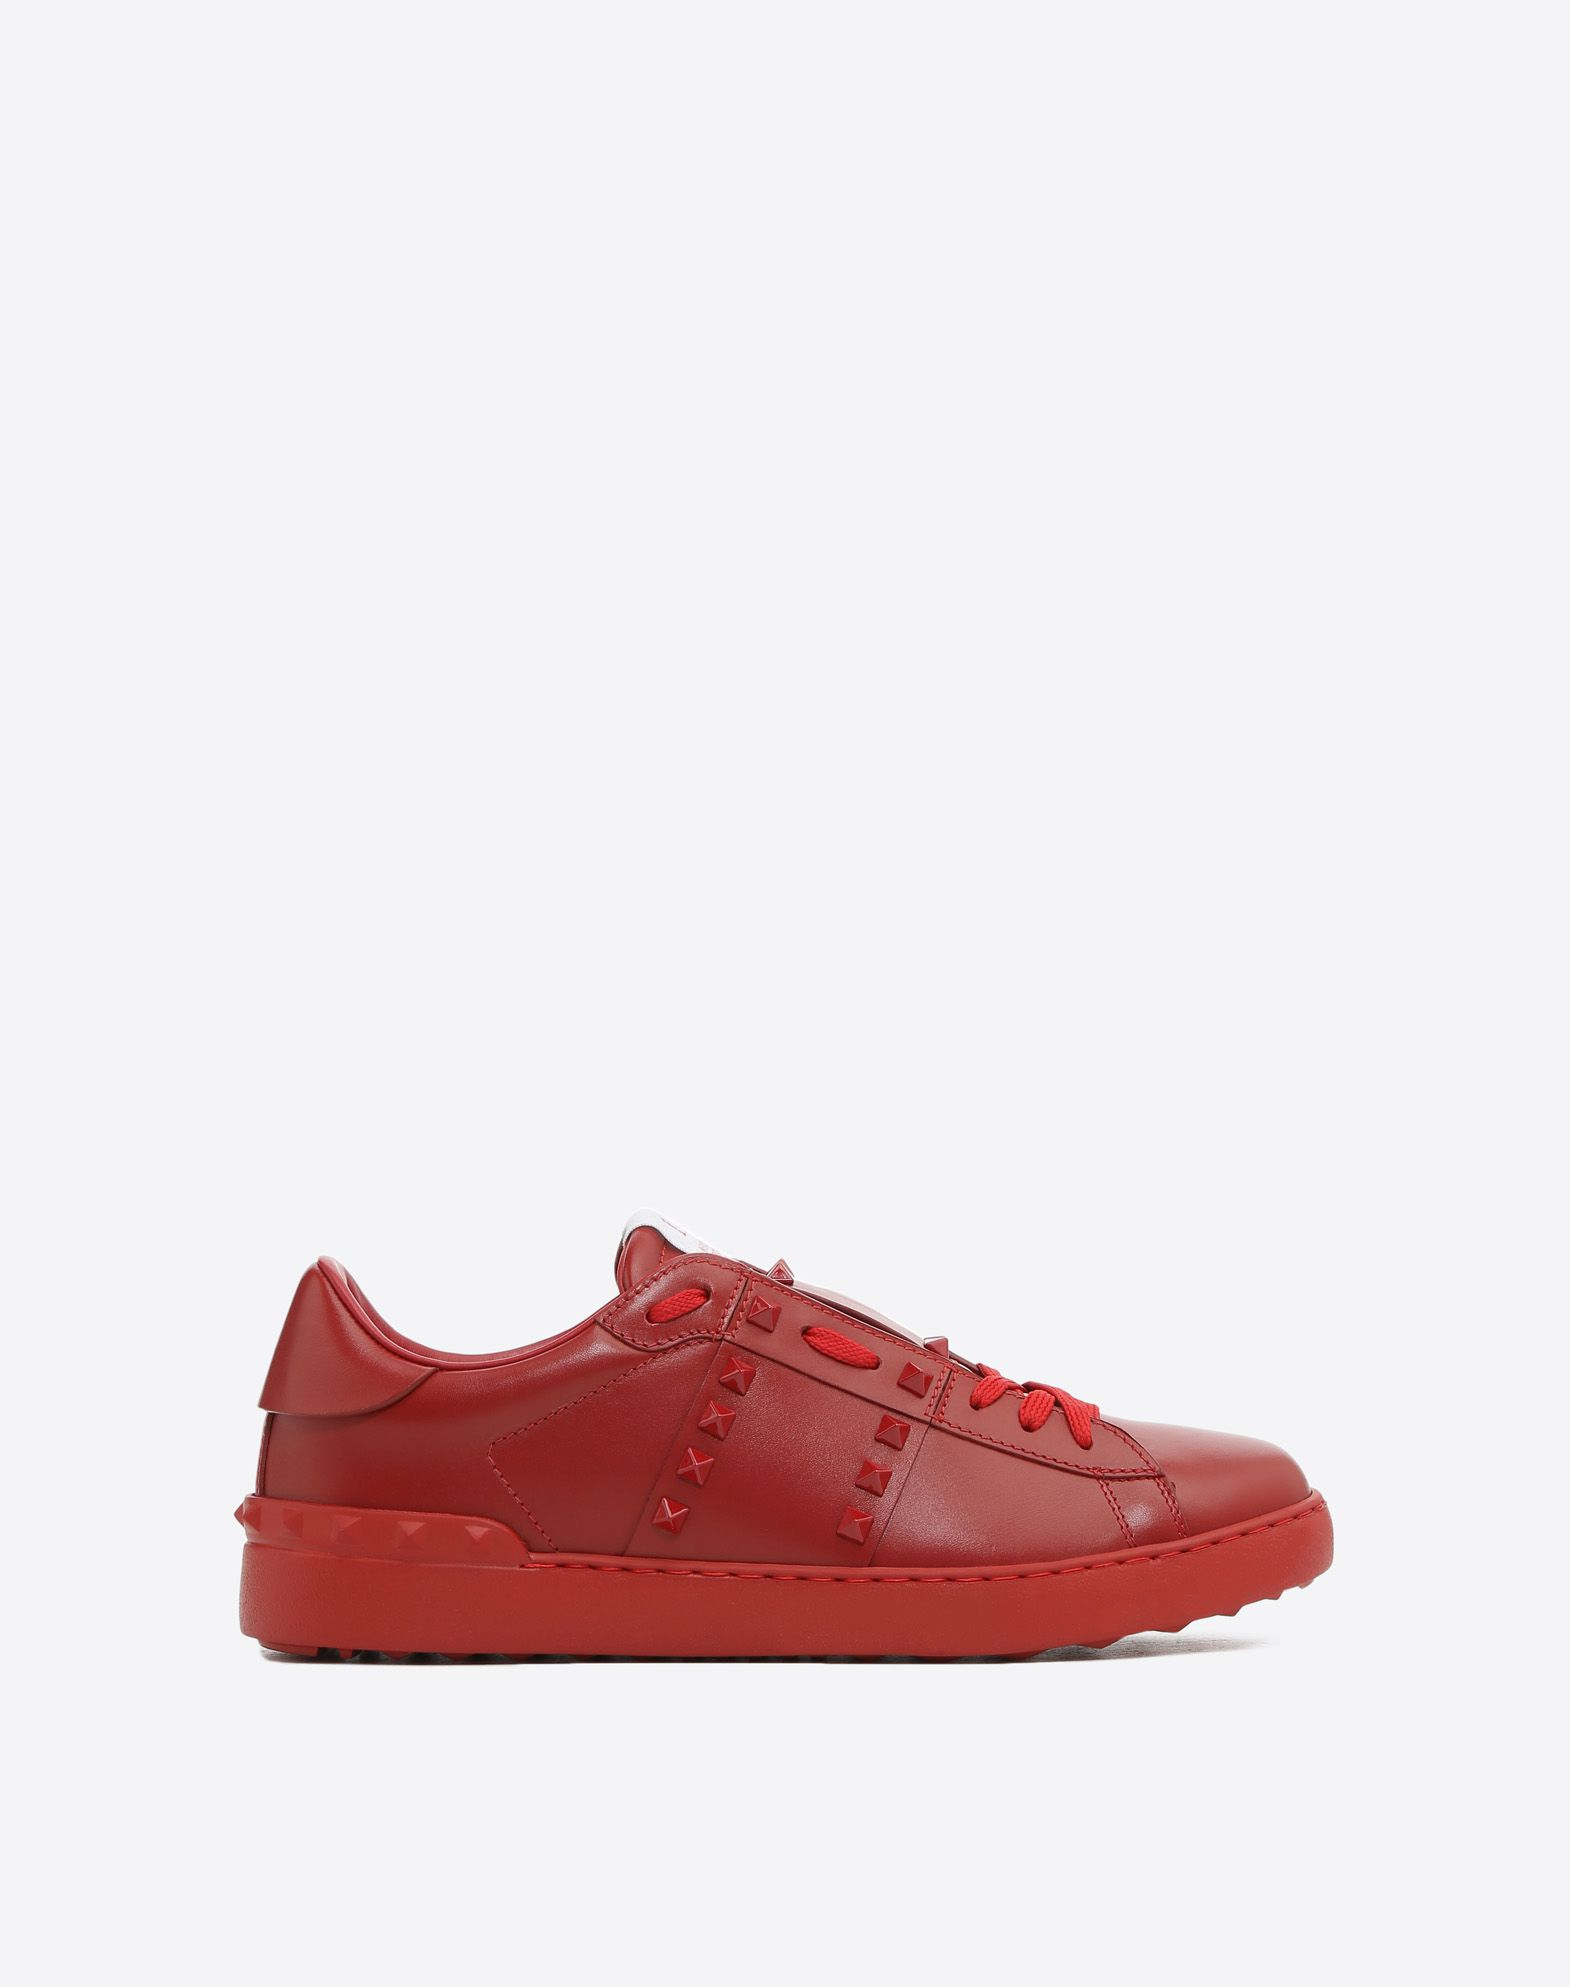 VALENTINO GARAVANI UOMO Sneakers Rockstud Untitled Rosso LOW-TOP SNEAKERS U f